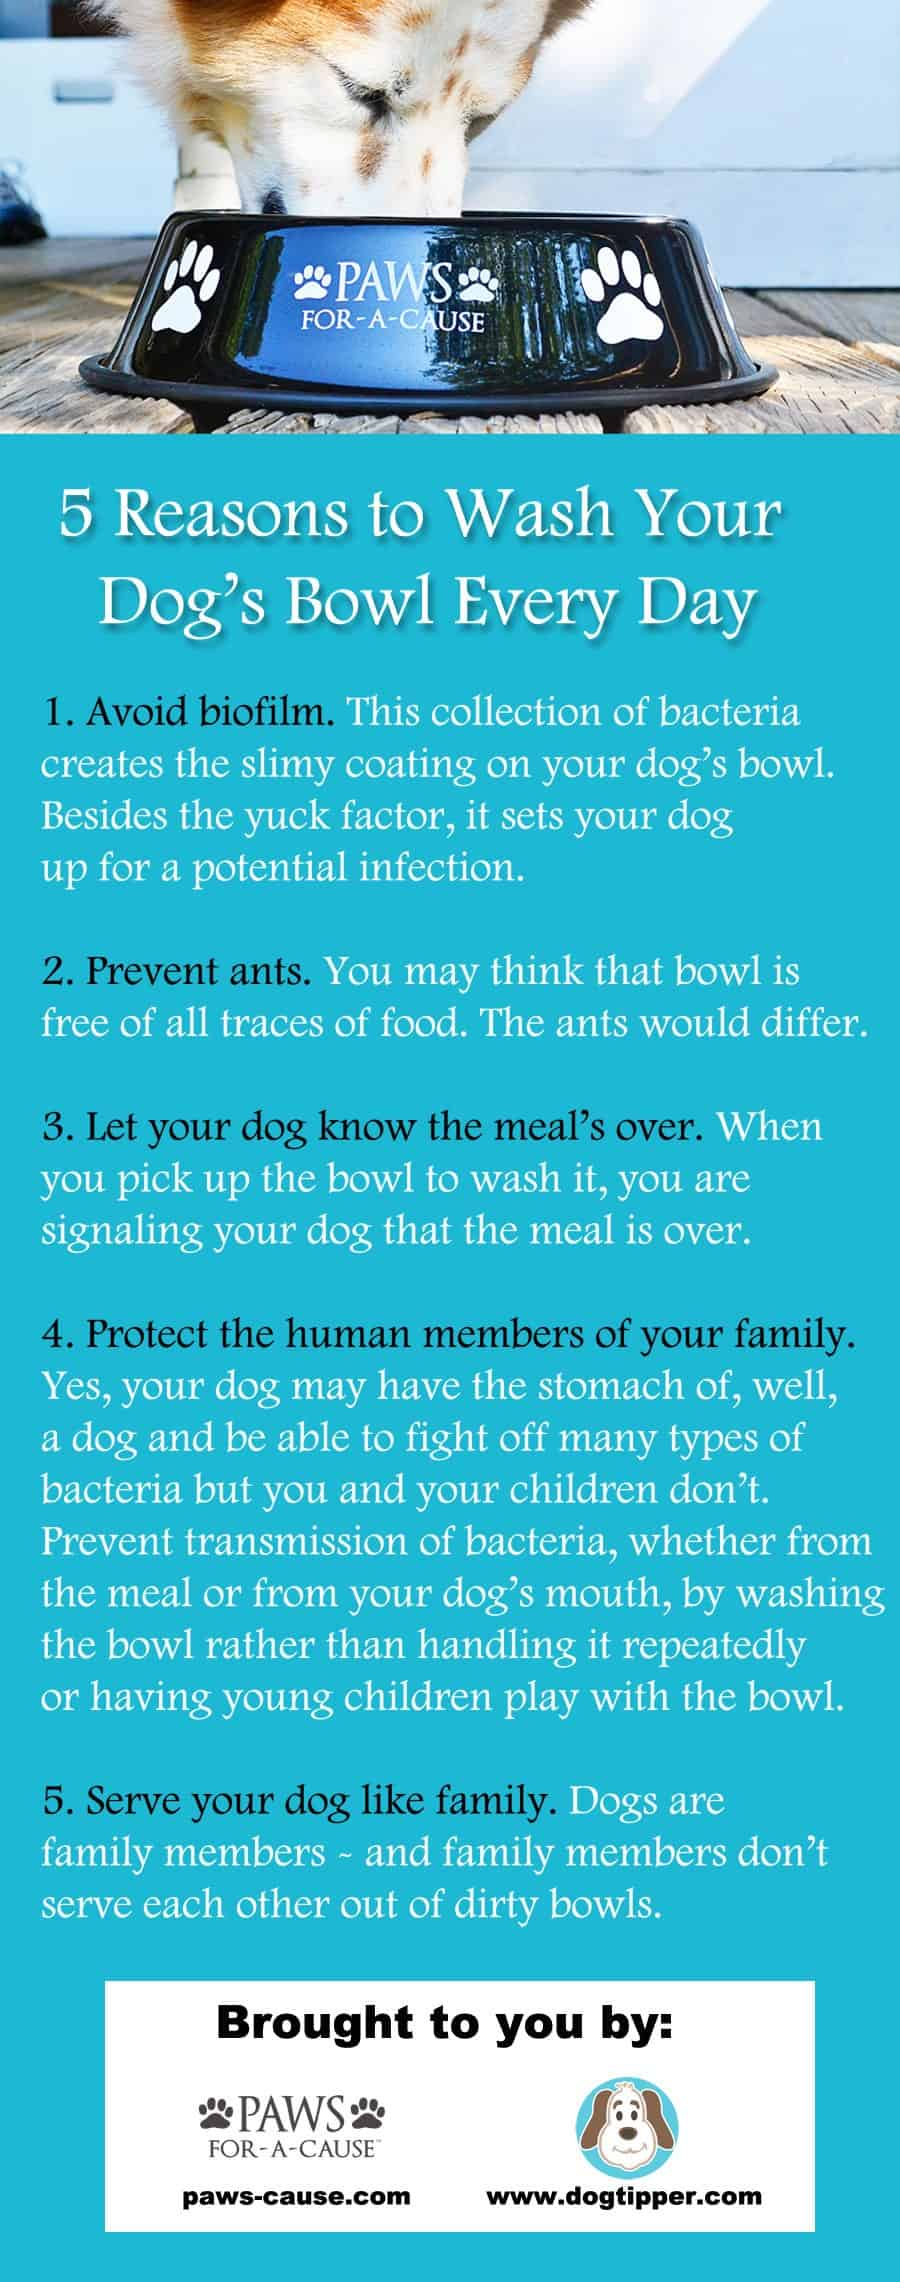 5 reasons to wash your dog's bowl every day'